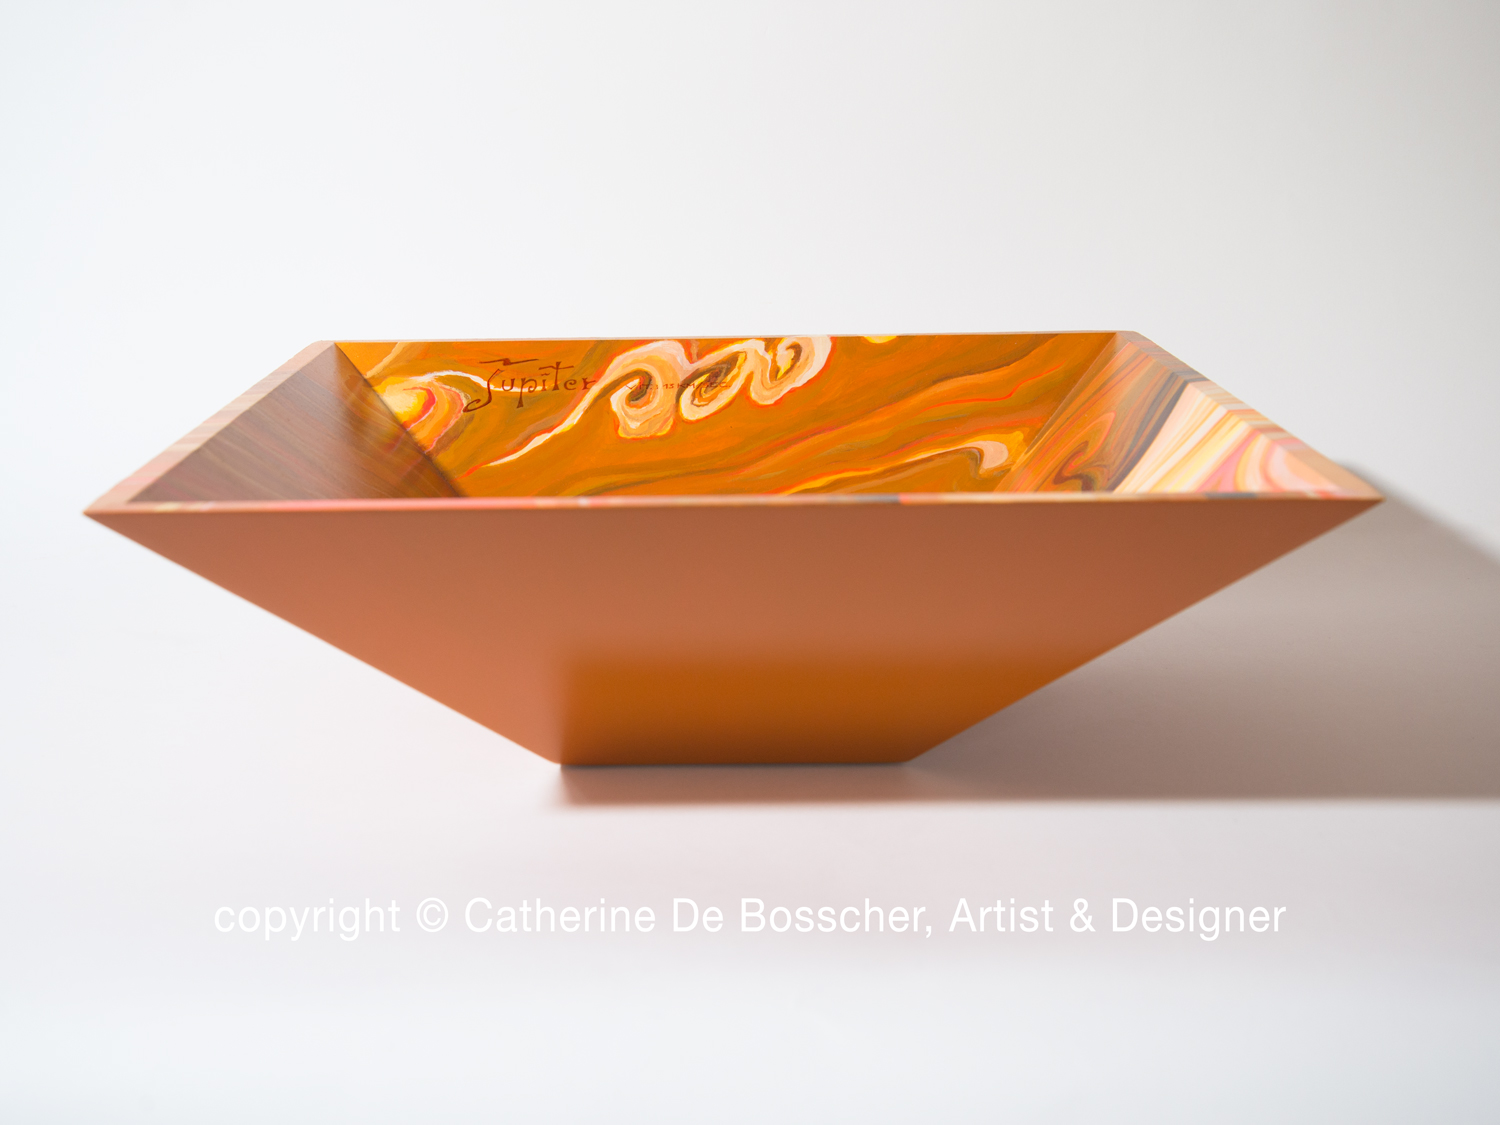 """Planète Jupiter"" Pyramidal Bowl by Catherine De Bosscher"